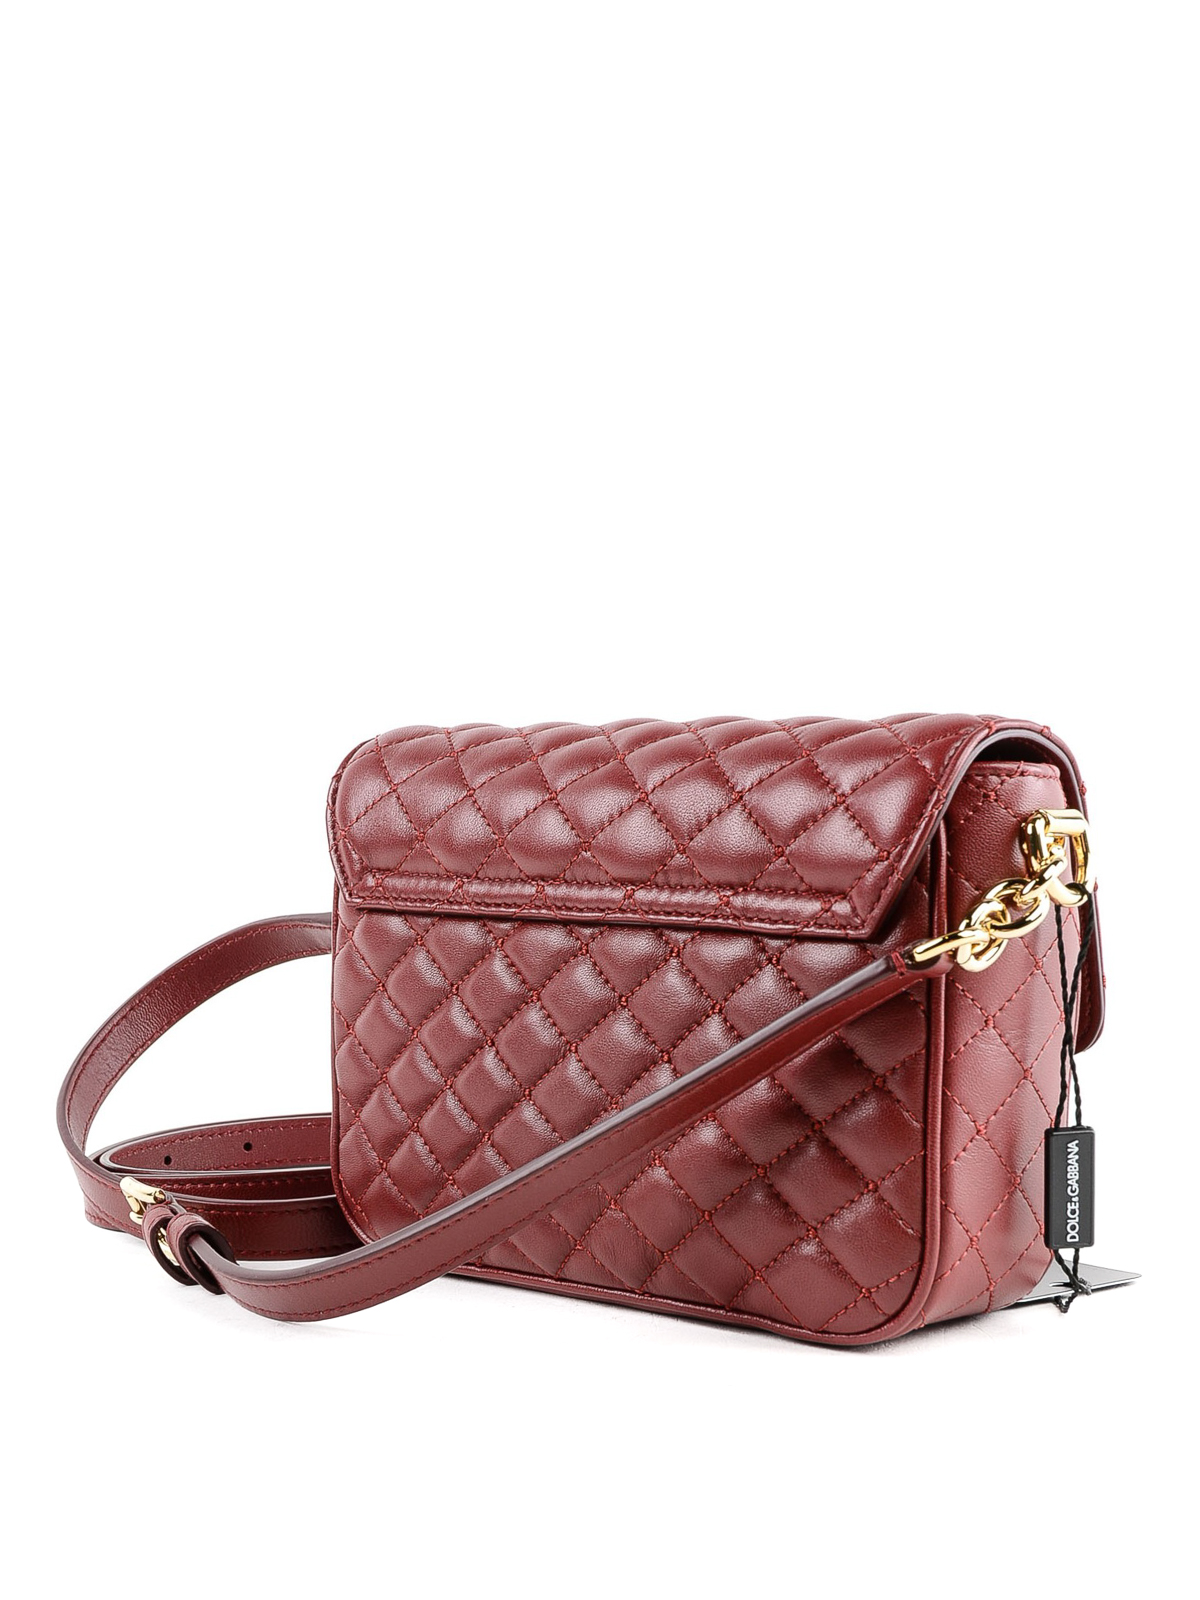 f655052efc iKRIX DOLCE   GABBANA  shoulder bags - Quilted leather DG Millennials red  small bag